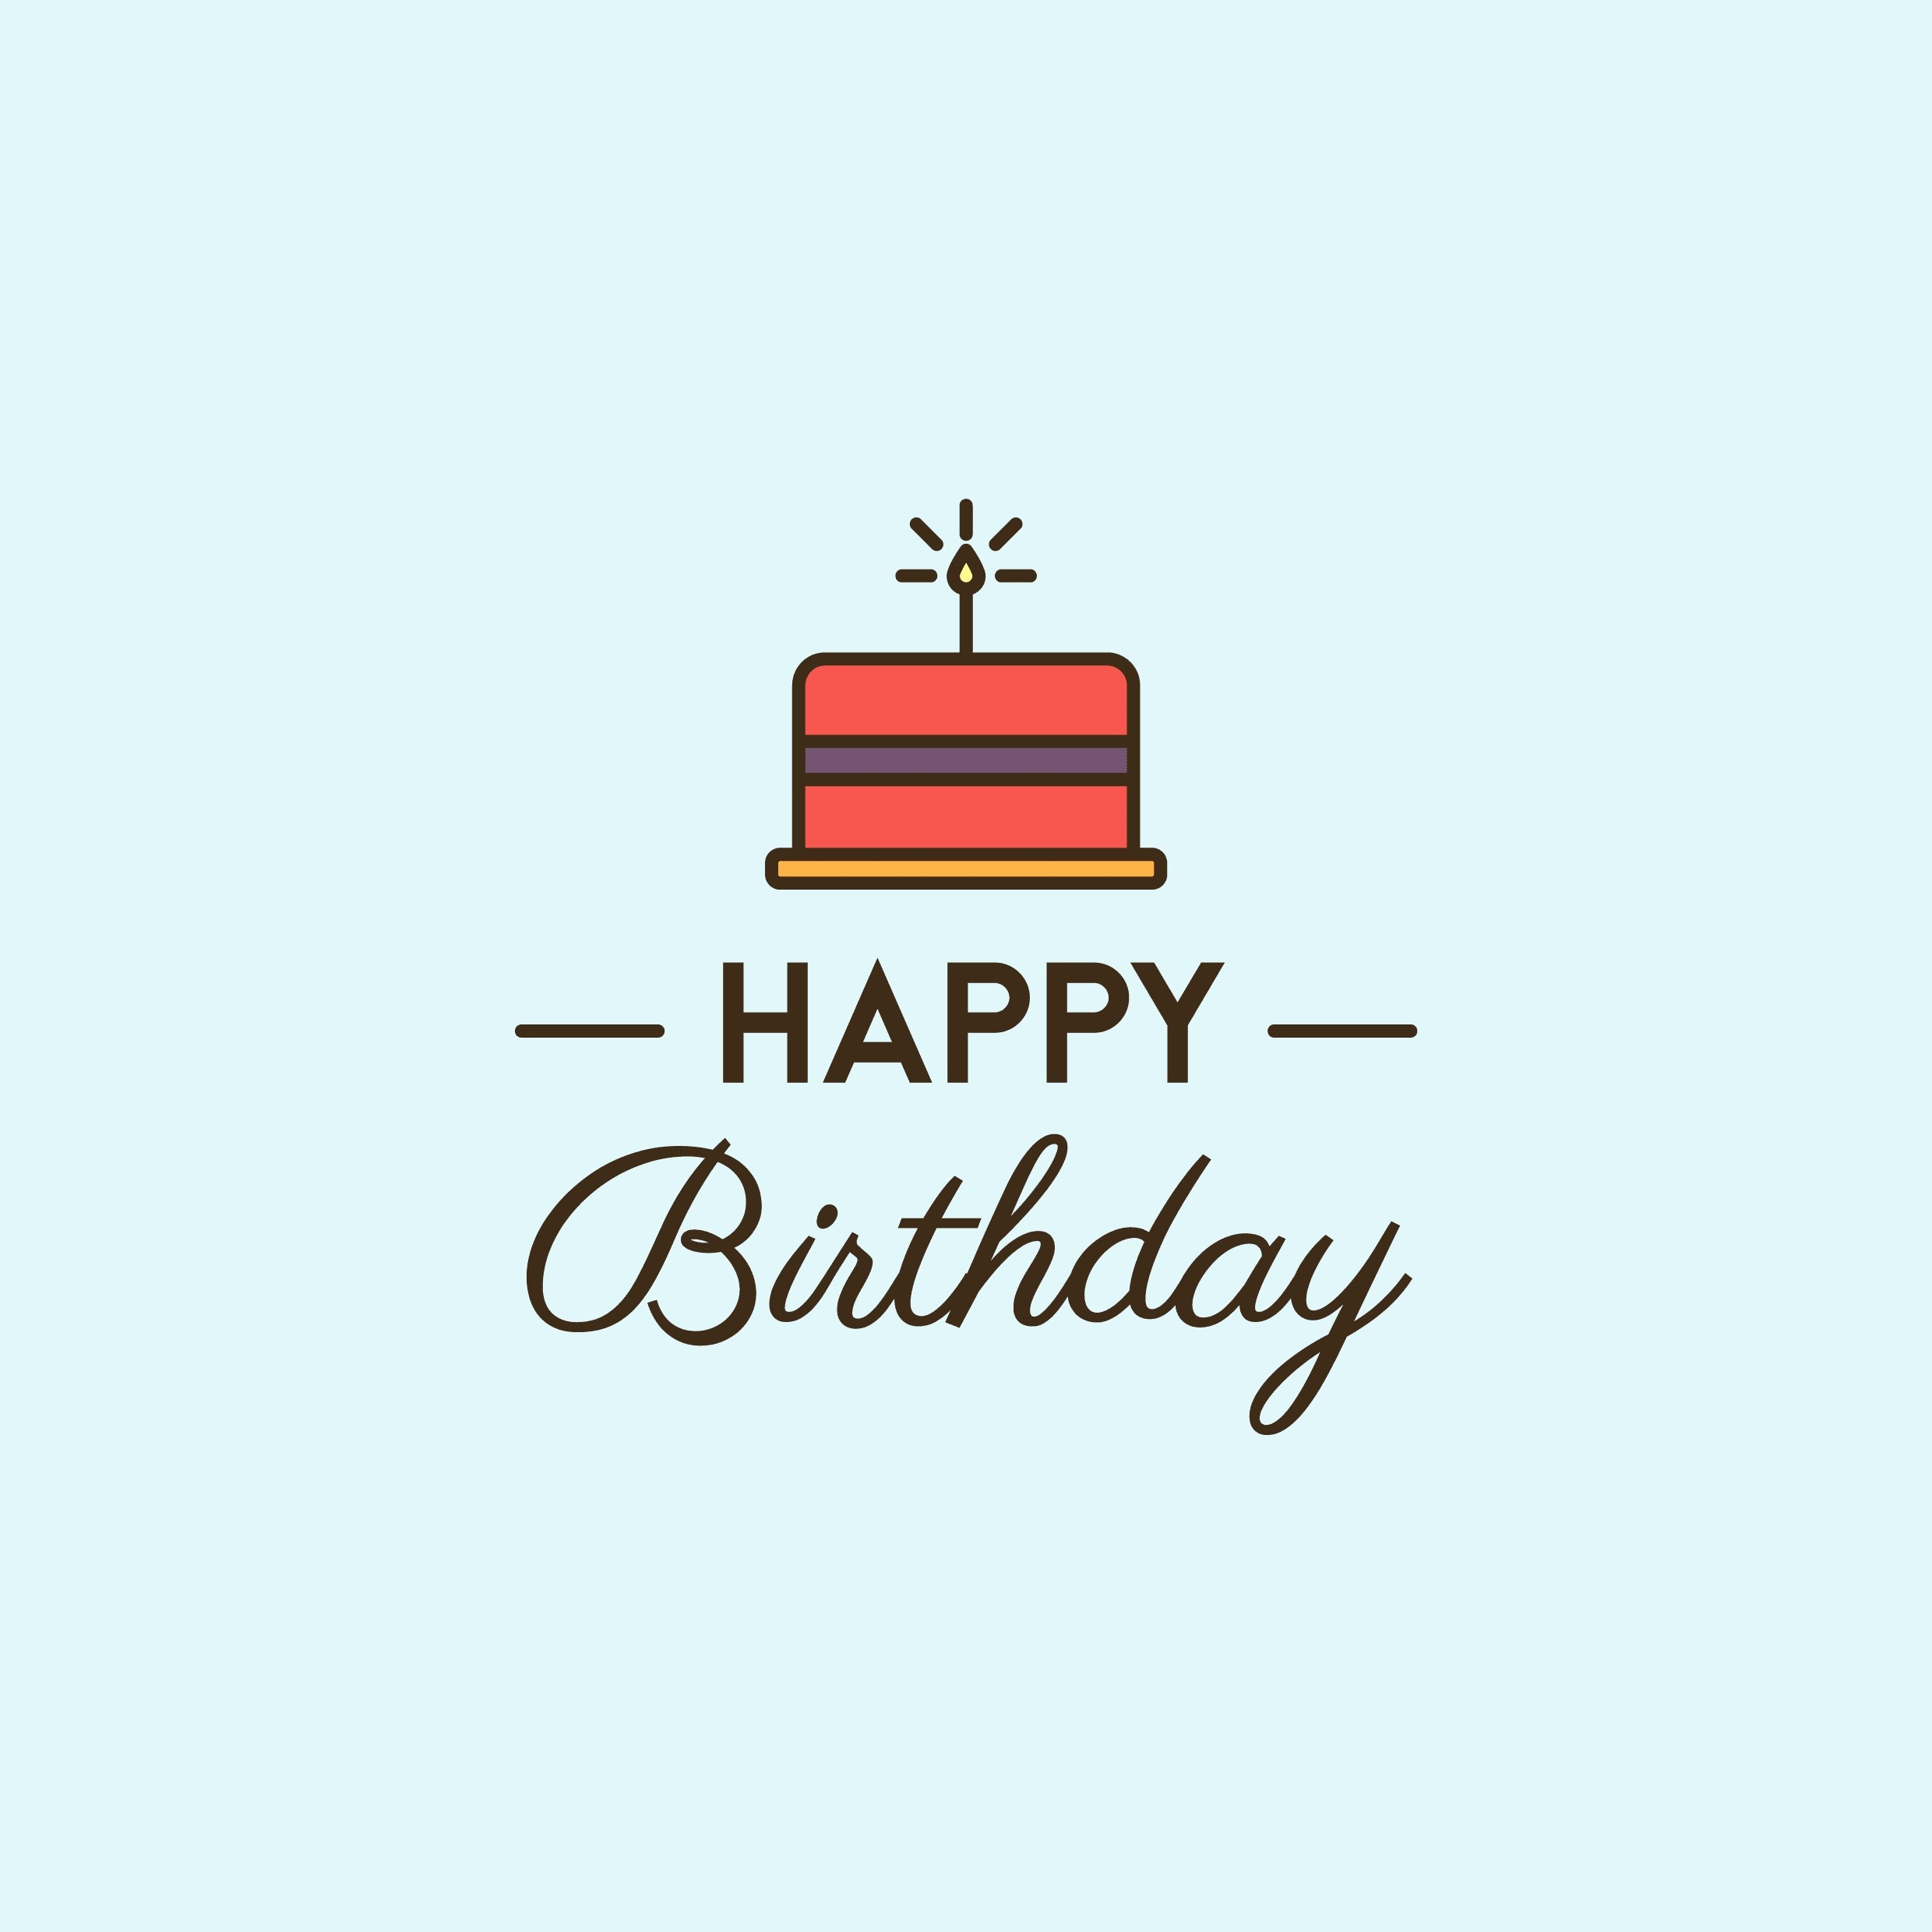 send birthday card by text message ; send-birthday-card-by-text-message-luxury-how-to-send-a-birthday-card-beautiful-how-to-send-greeting-cards-of-send-birthday-card-by-text-message